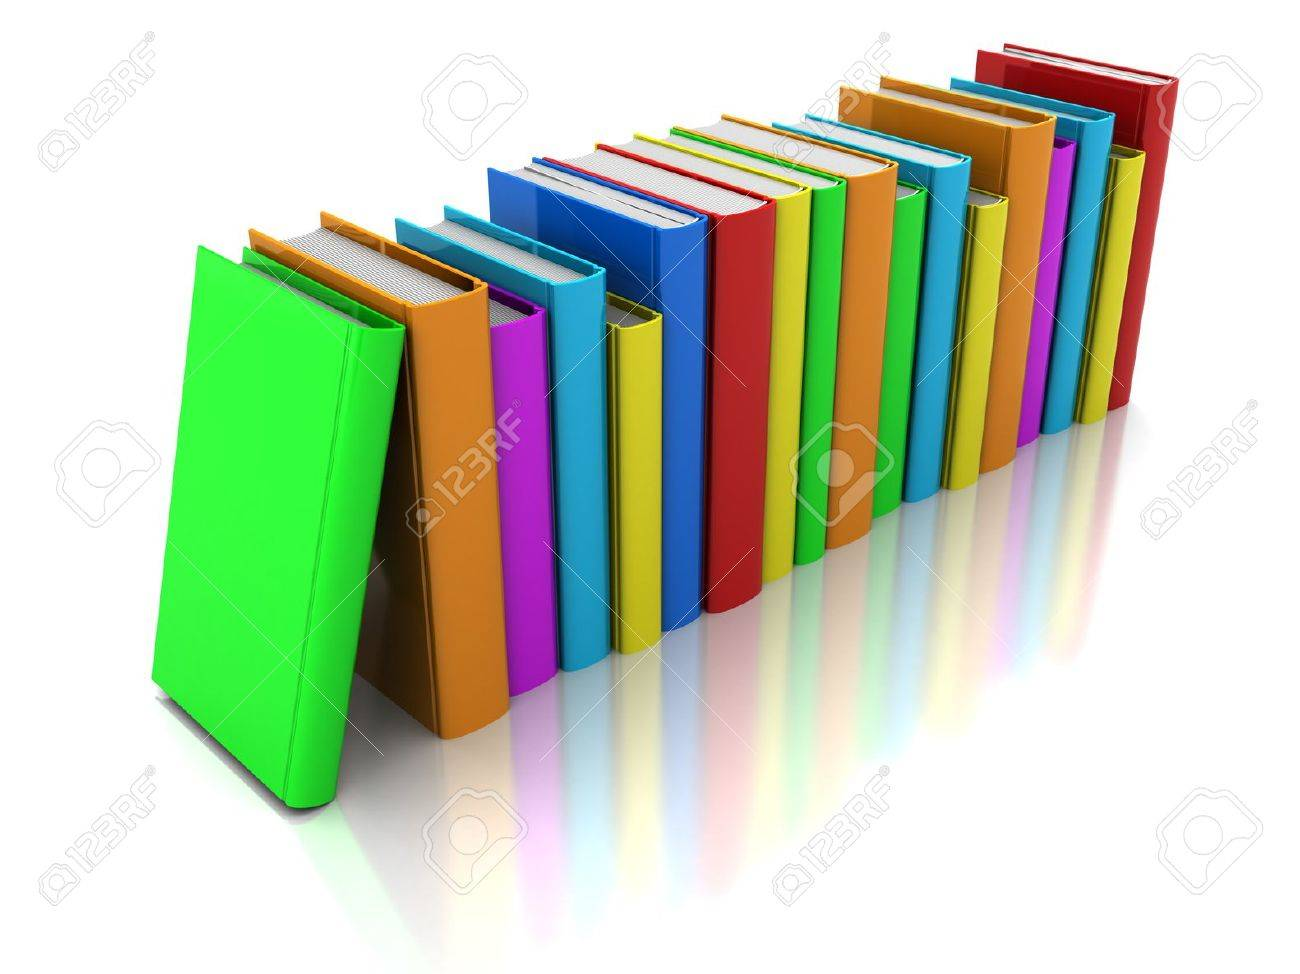 row of color books with green book in front on a white background stock photo - Books About The Color Green